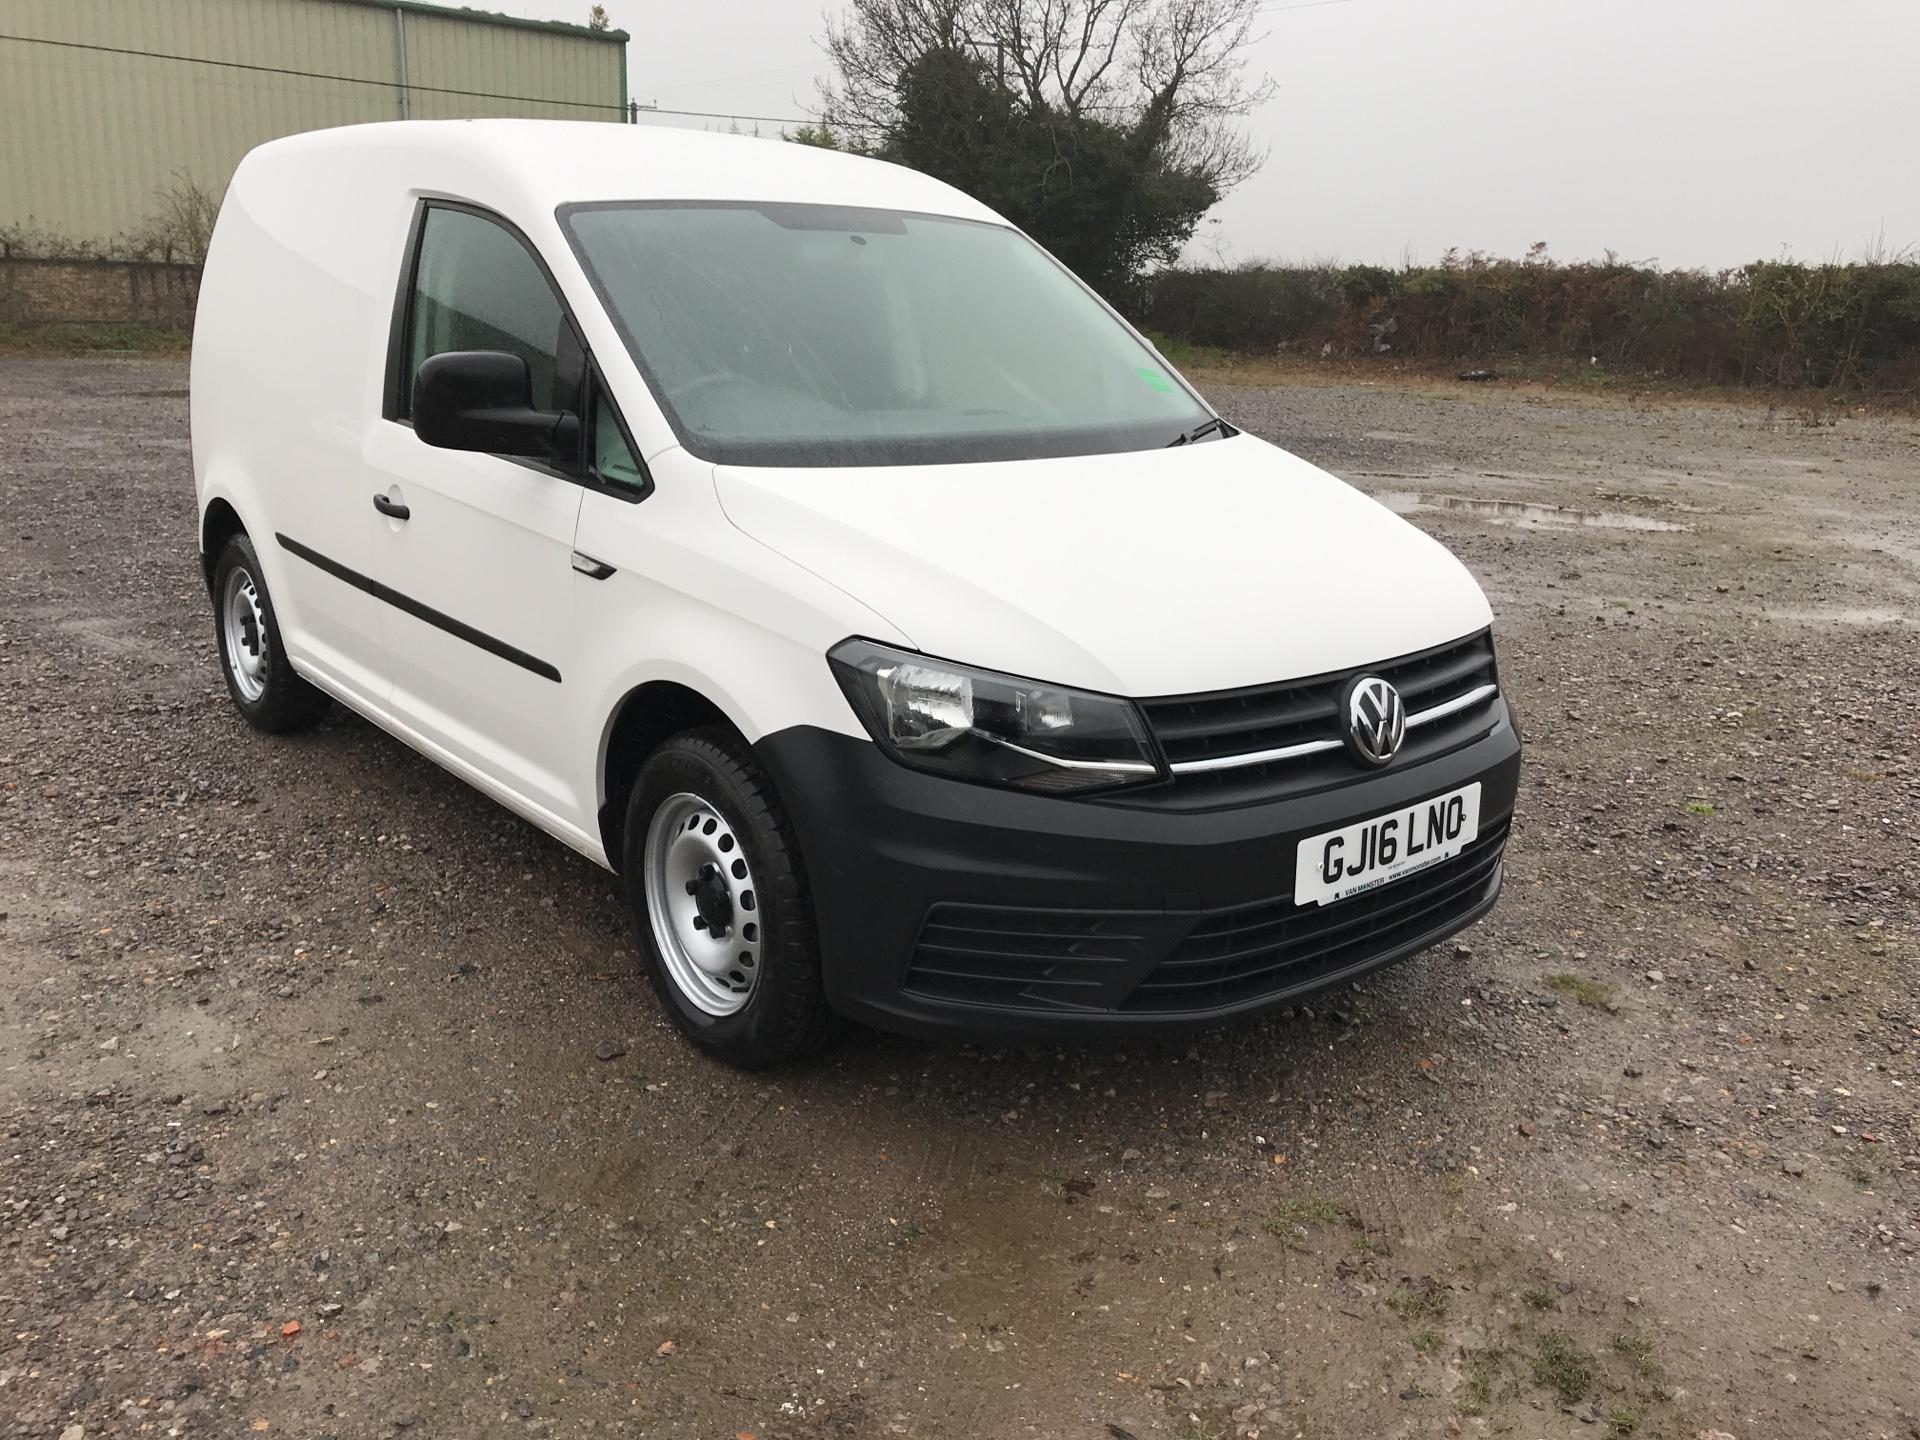 2016 Volkswagen Caddy  2.0 102PS BLUEMOTION TECH 102 STARTLINE EURO 6 (GJ16LNO)